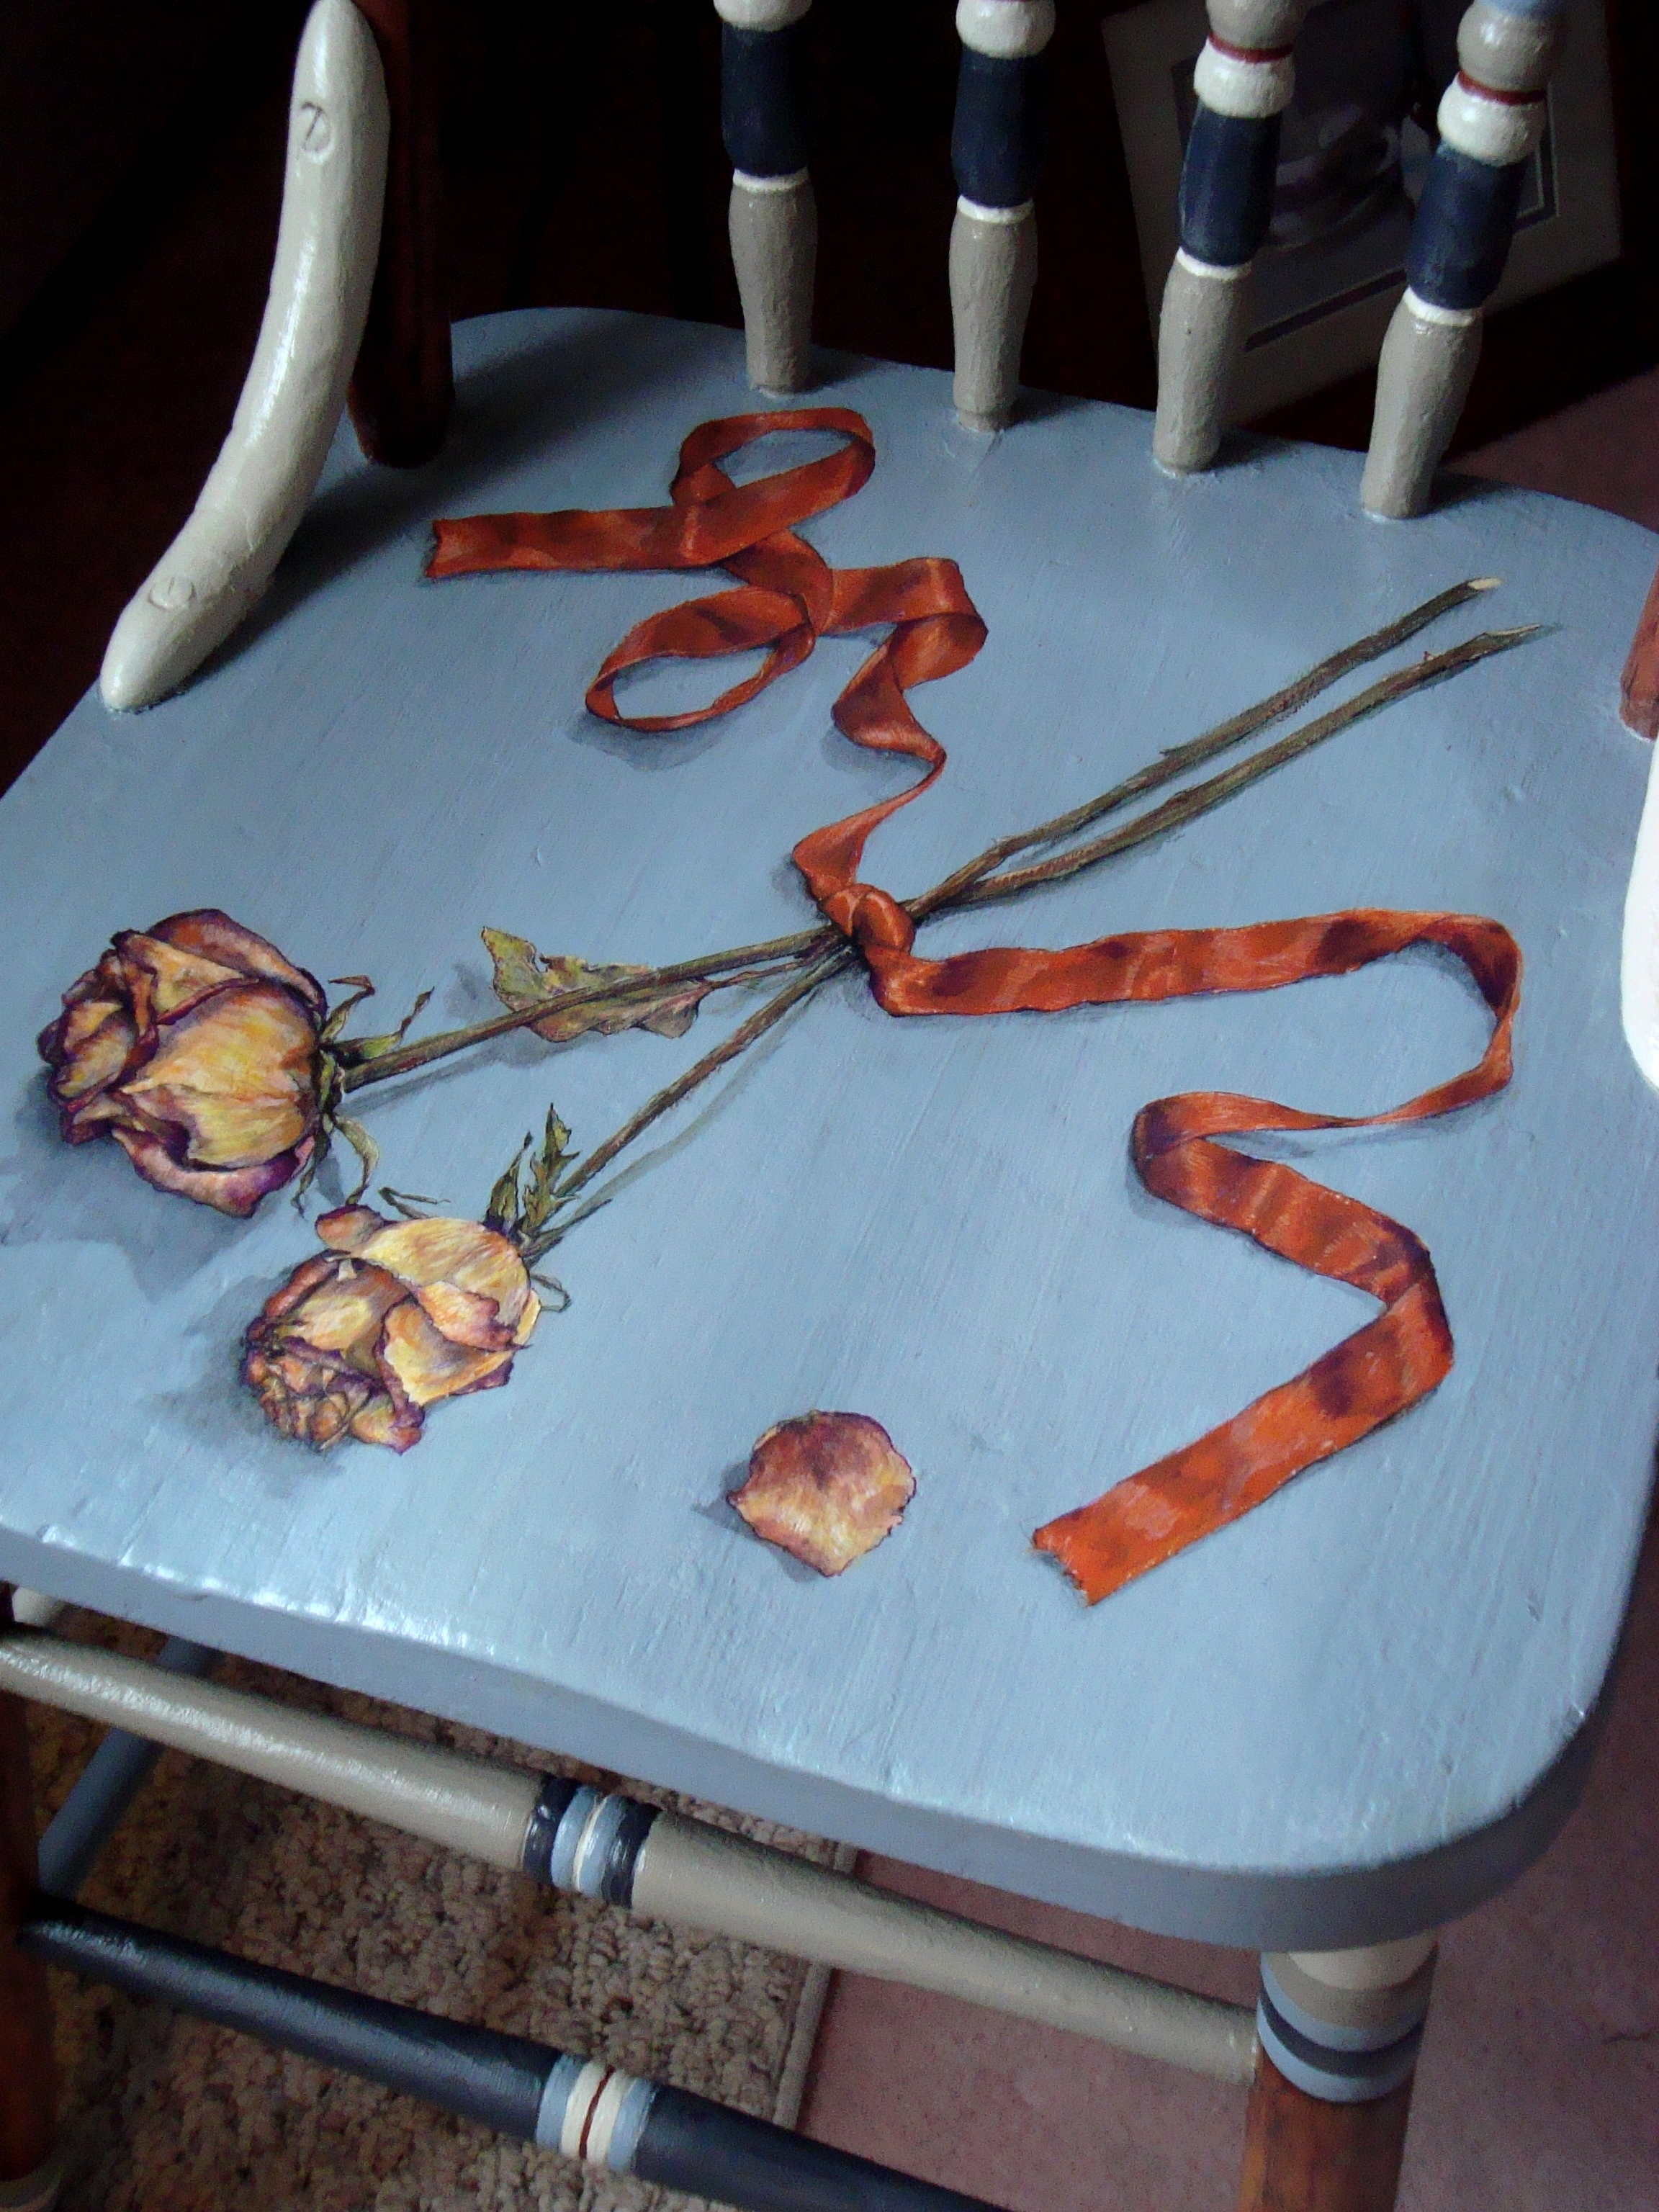 Chair Painted With Ribbons and Dried Roses